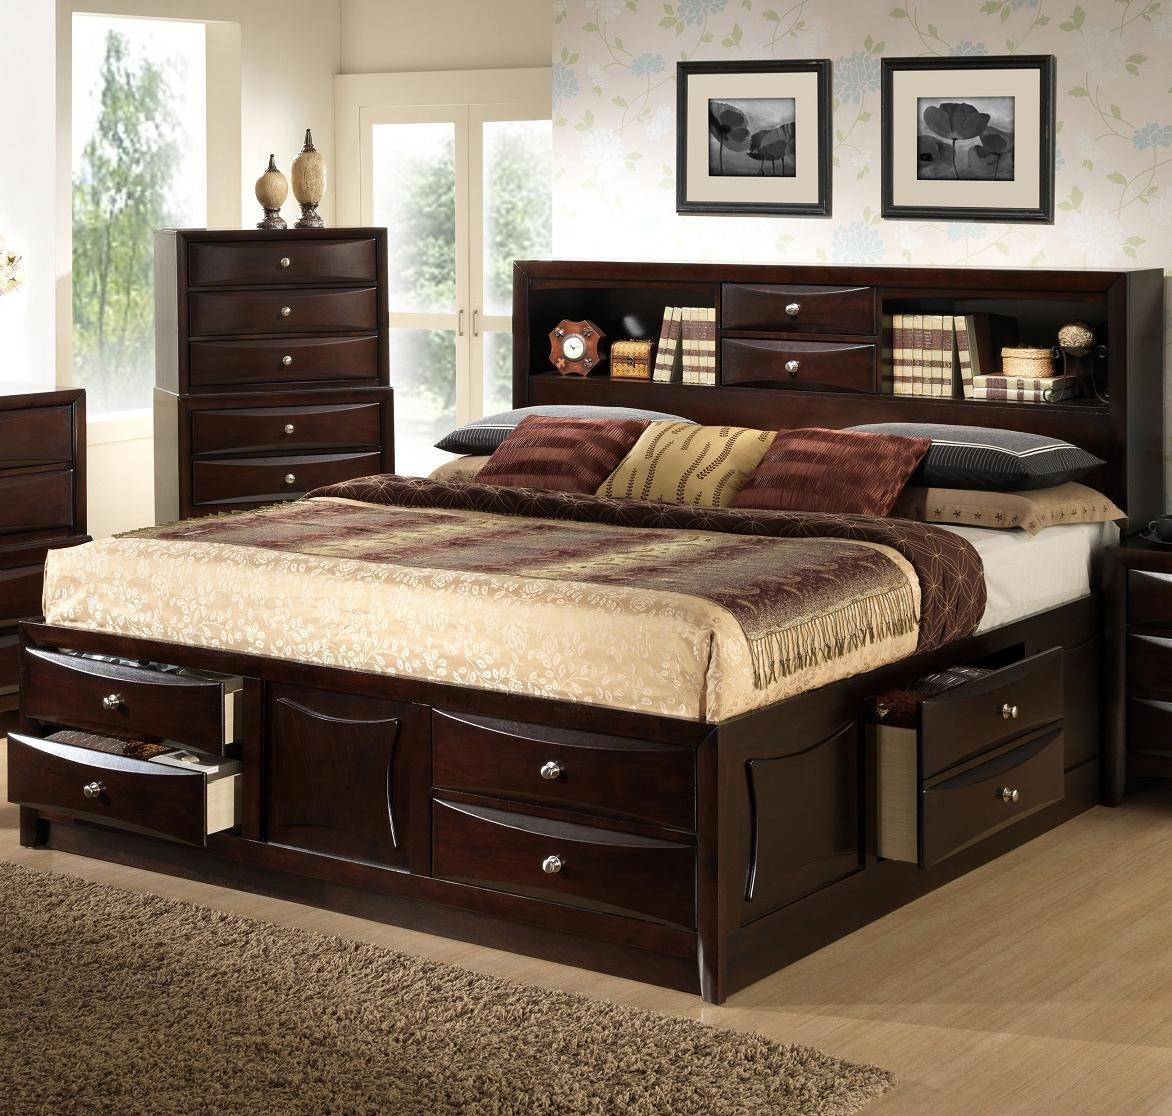 california king bed. Lifestyle ToddKing/ California King Storage Bed T